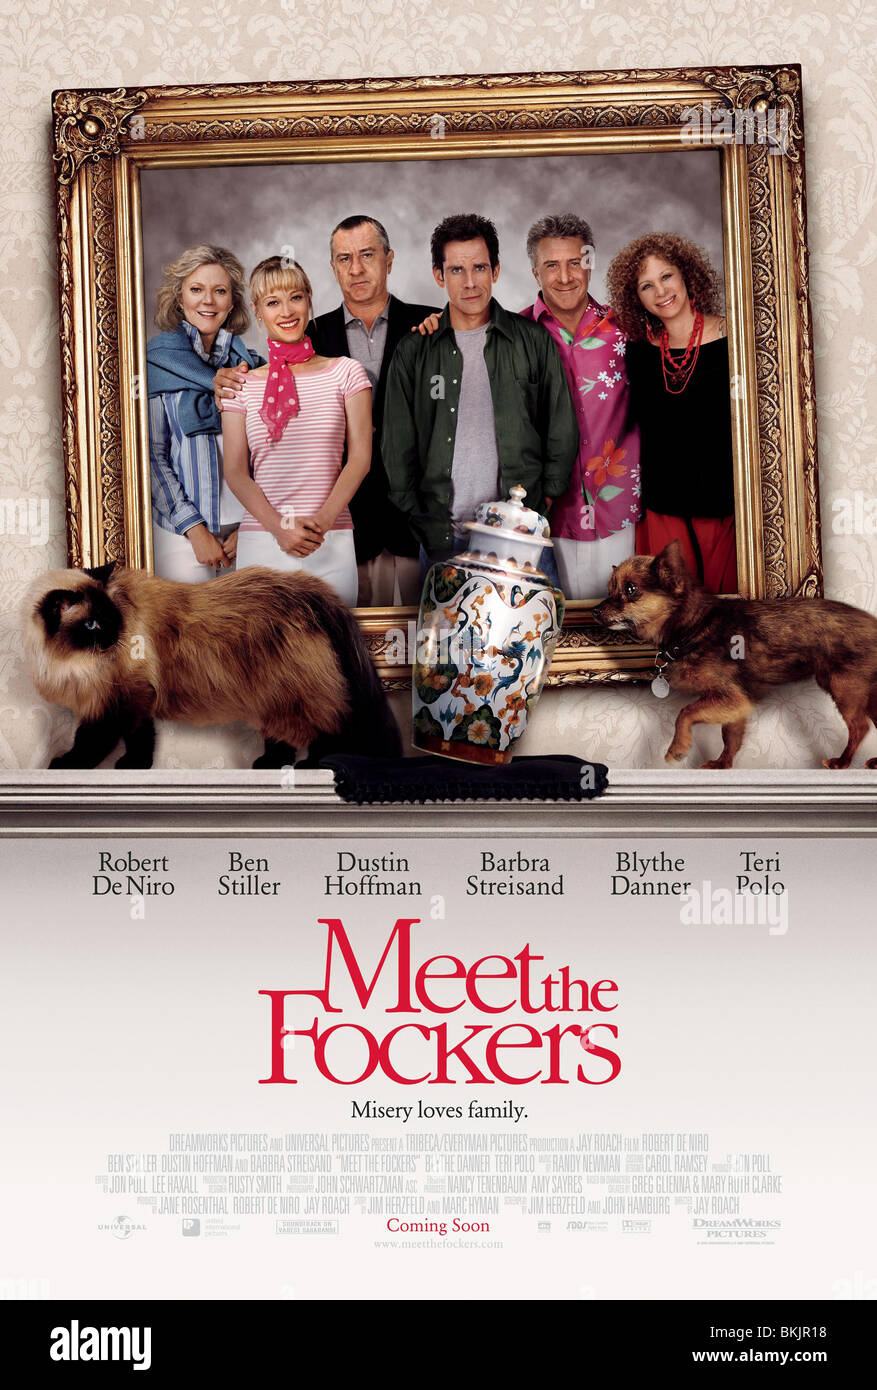 meet the fockers online streaming free Watch meet the fockers full movie online download , meet the fockers subtitle in english free hd on 123movies.